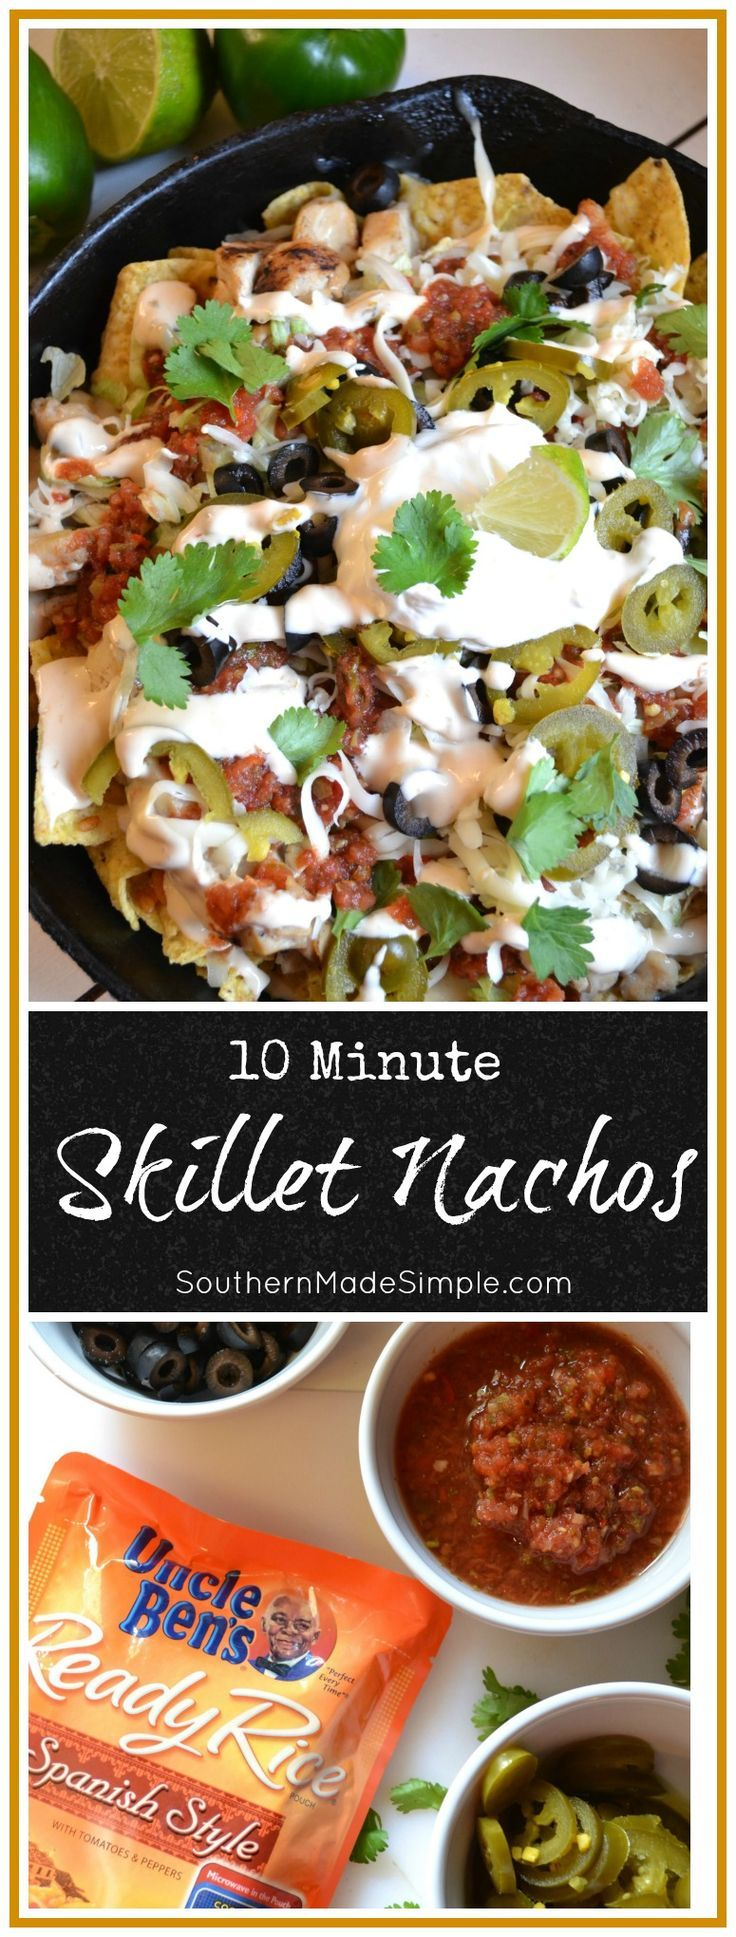 10 Minute Skillet Nachos are a perfect meal or snack on busy weekdays or even for game day! This meal is easy for kids to help prepare and can be personalized with all of your favorite nacho toppings! #BensBeginners #UncleBensPromo #ad @UncleBens